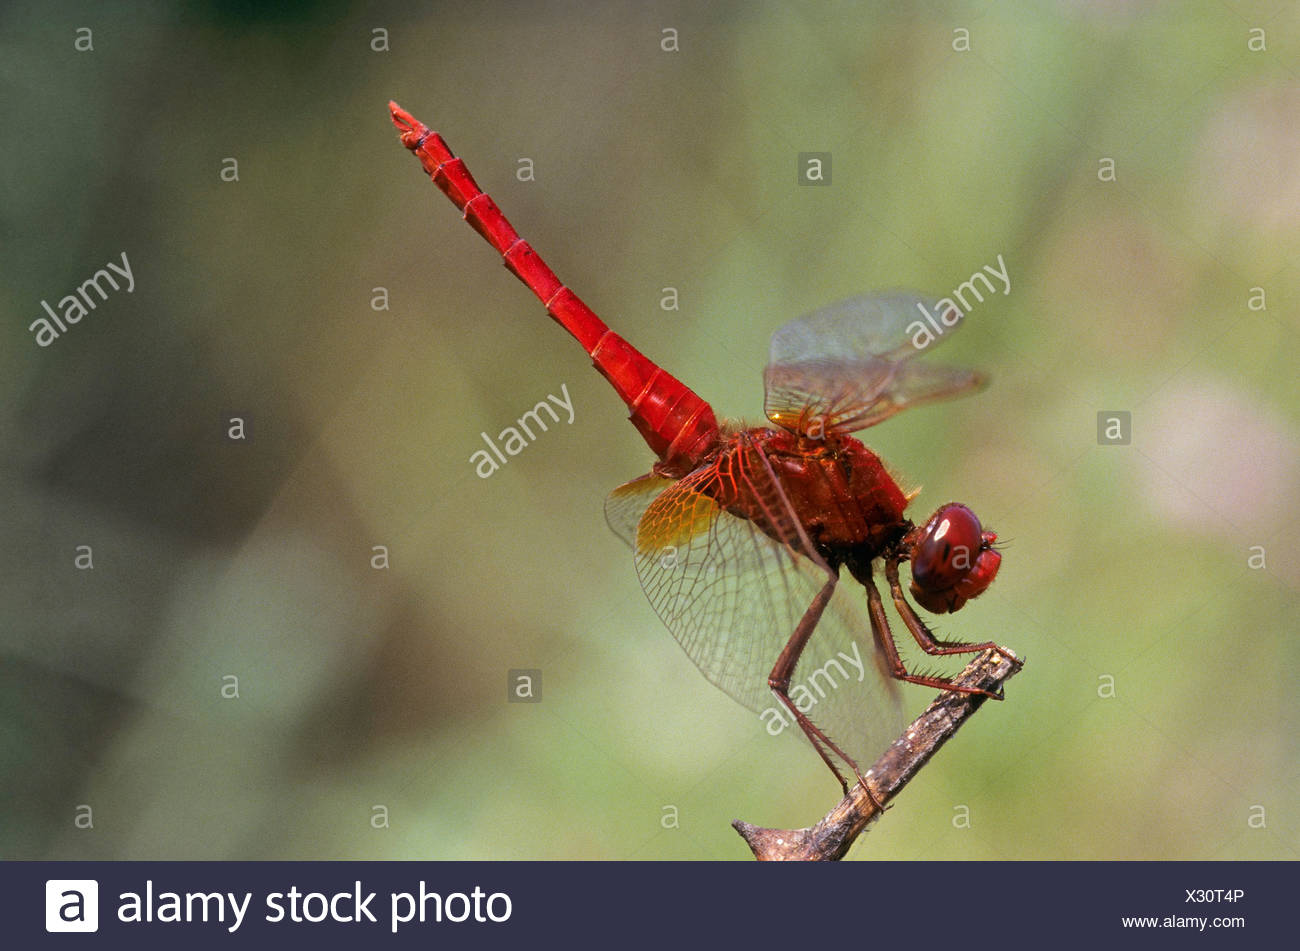 Broad Scarlet, Common Scarlet-darter, Scarlet Darter, Scarlet Dragonfly (Crocothemis erythraea, Croccothemis erythraea), male sitting at a dry stem, Germany Stock Photo